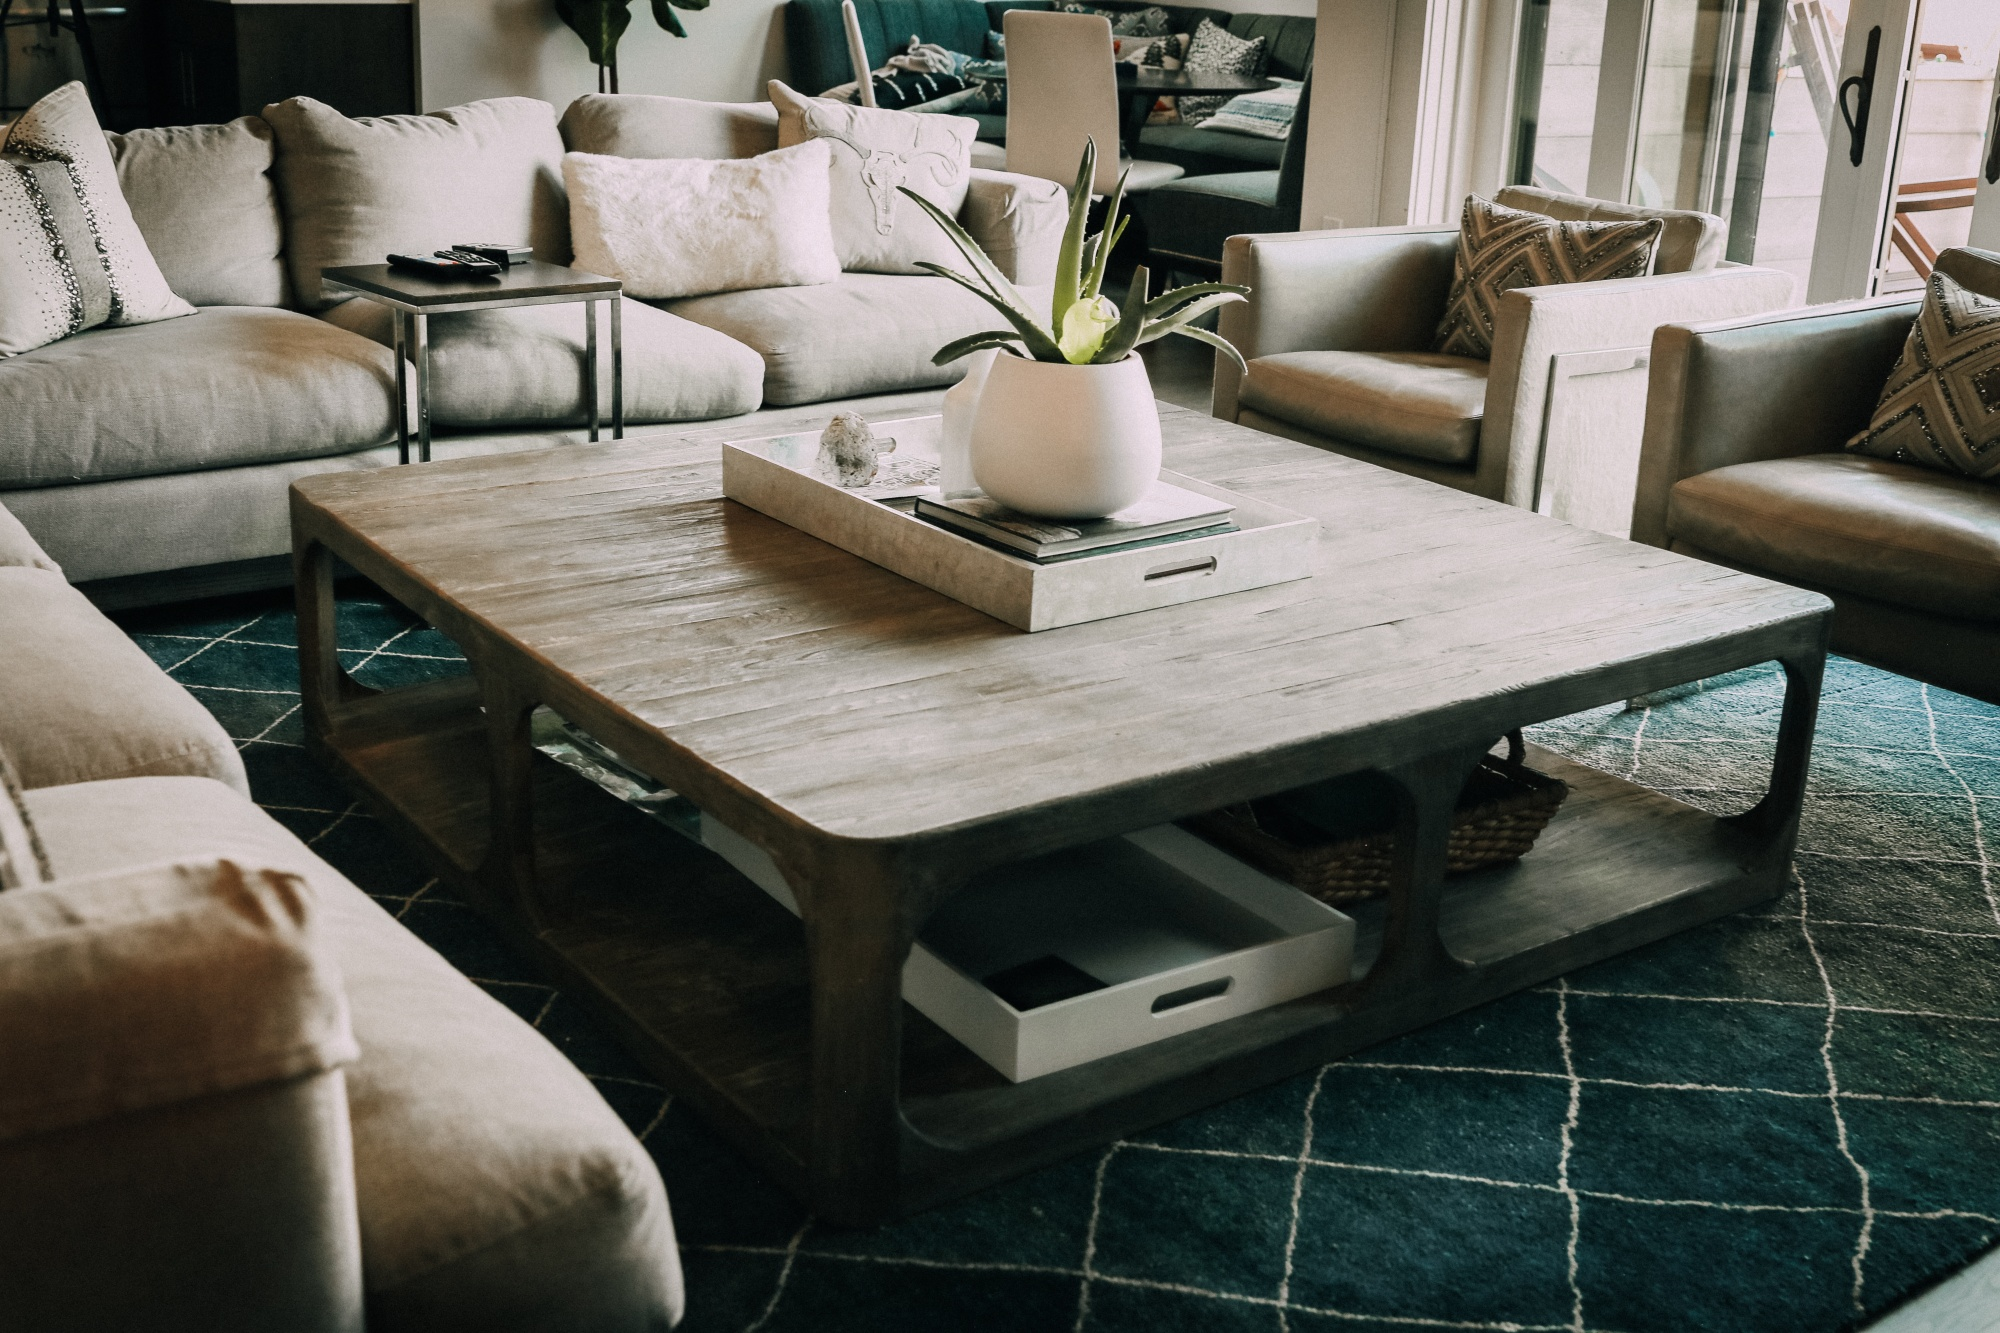 How To Make A Modern Home Cozy, Fashion blogger Erin Busbee of Busbee Style sharing her modern mountain home in Telluride, Colorado and how to make it cozy with pillows, personal touches, comfortable seating, house plants, and more! Including mixing styles with her wooden coffee table